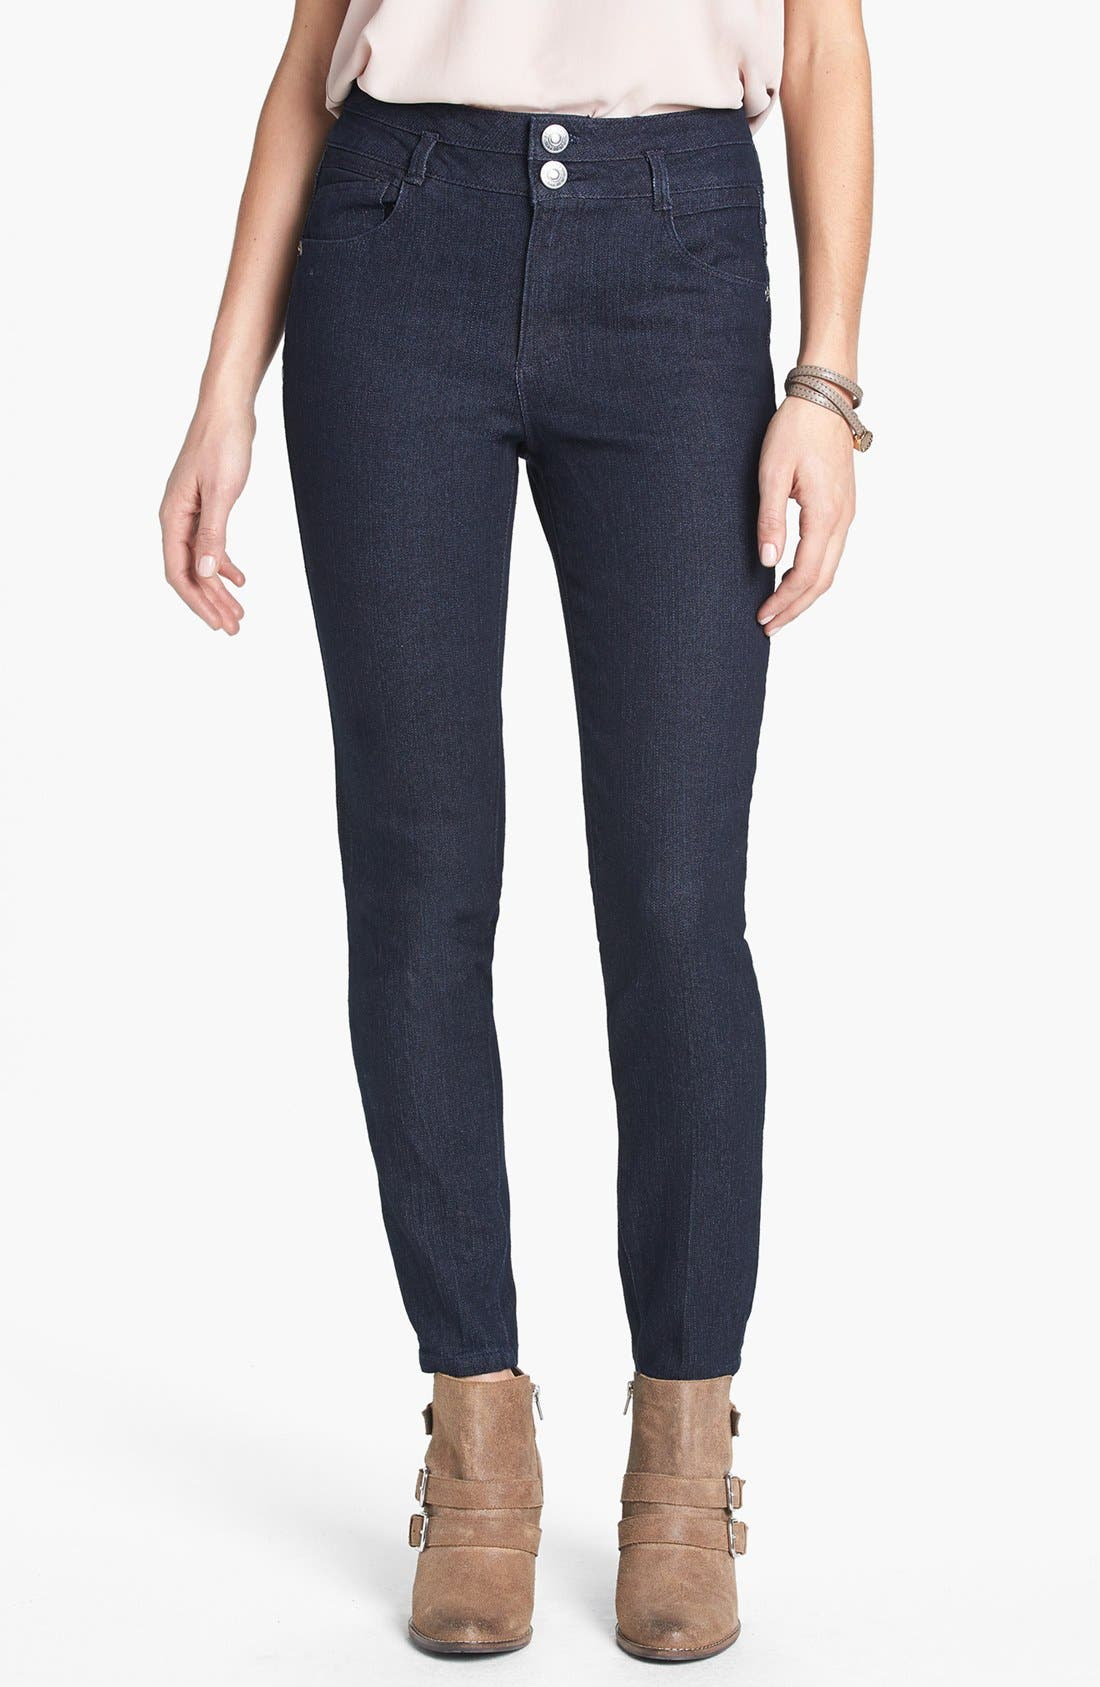 Alternate Image 1 Selected - Jolt High Waist Skinny Ankle Jeans (Juniors) (Online Only)